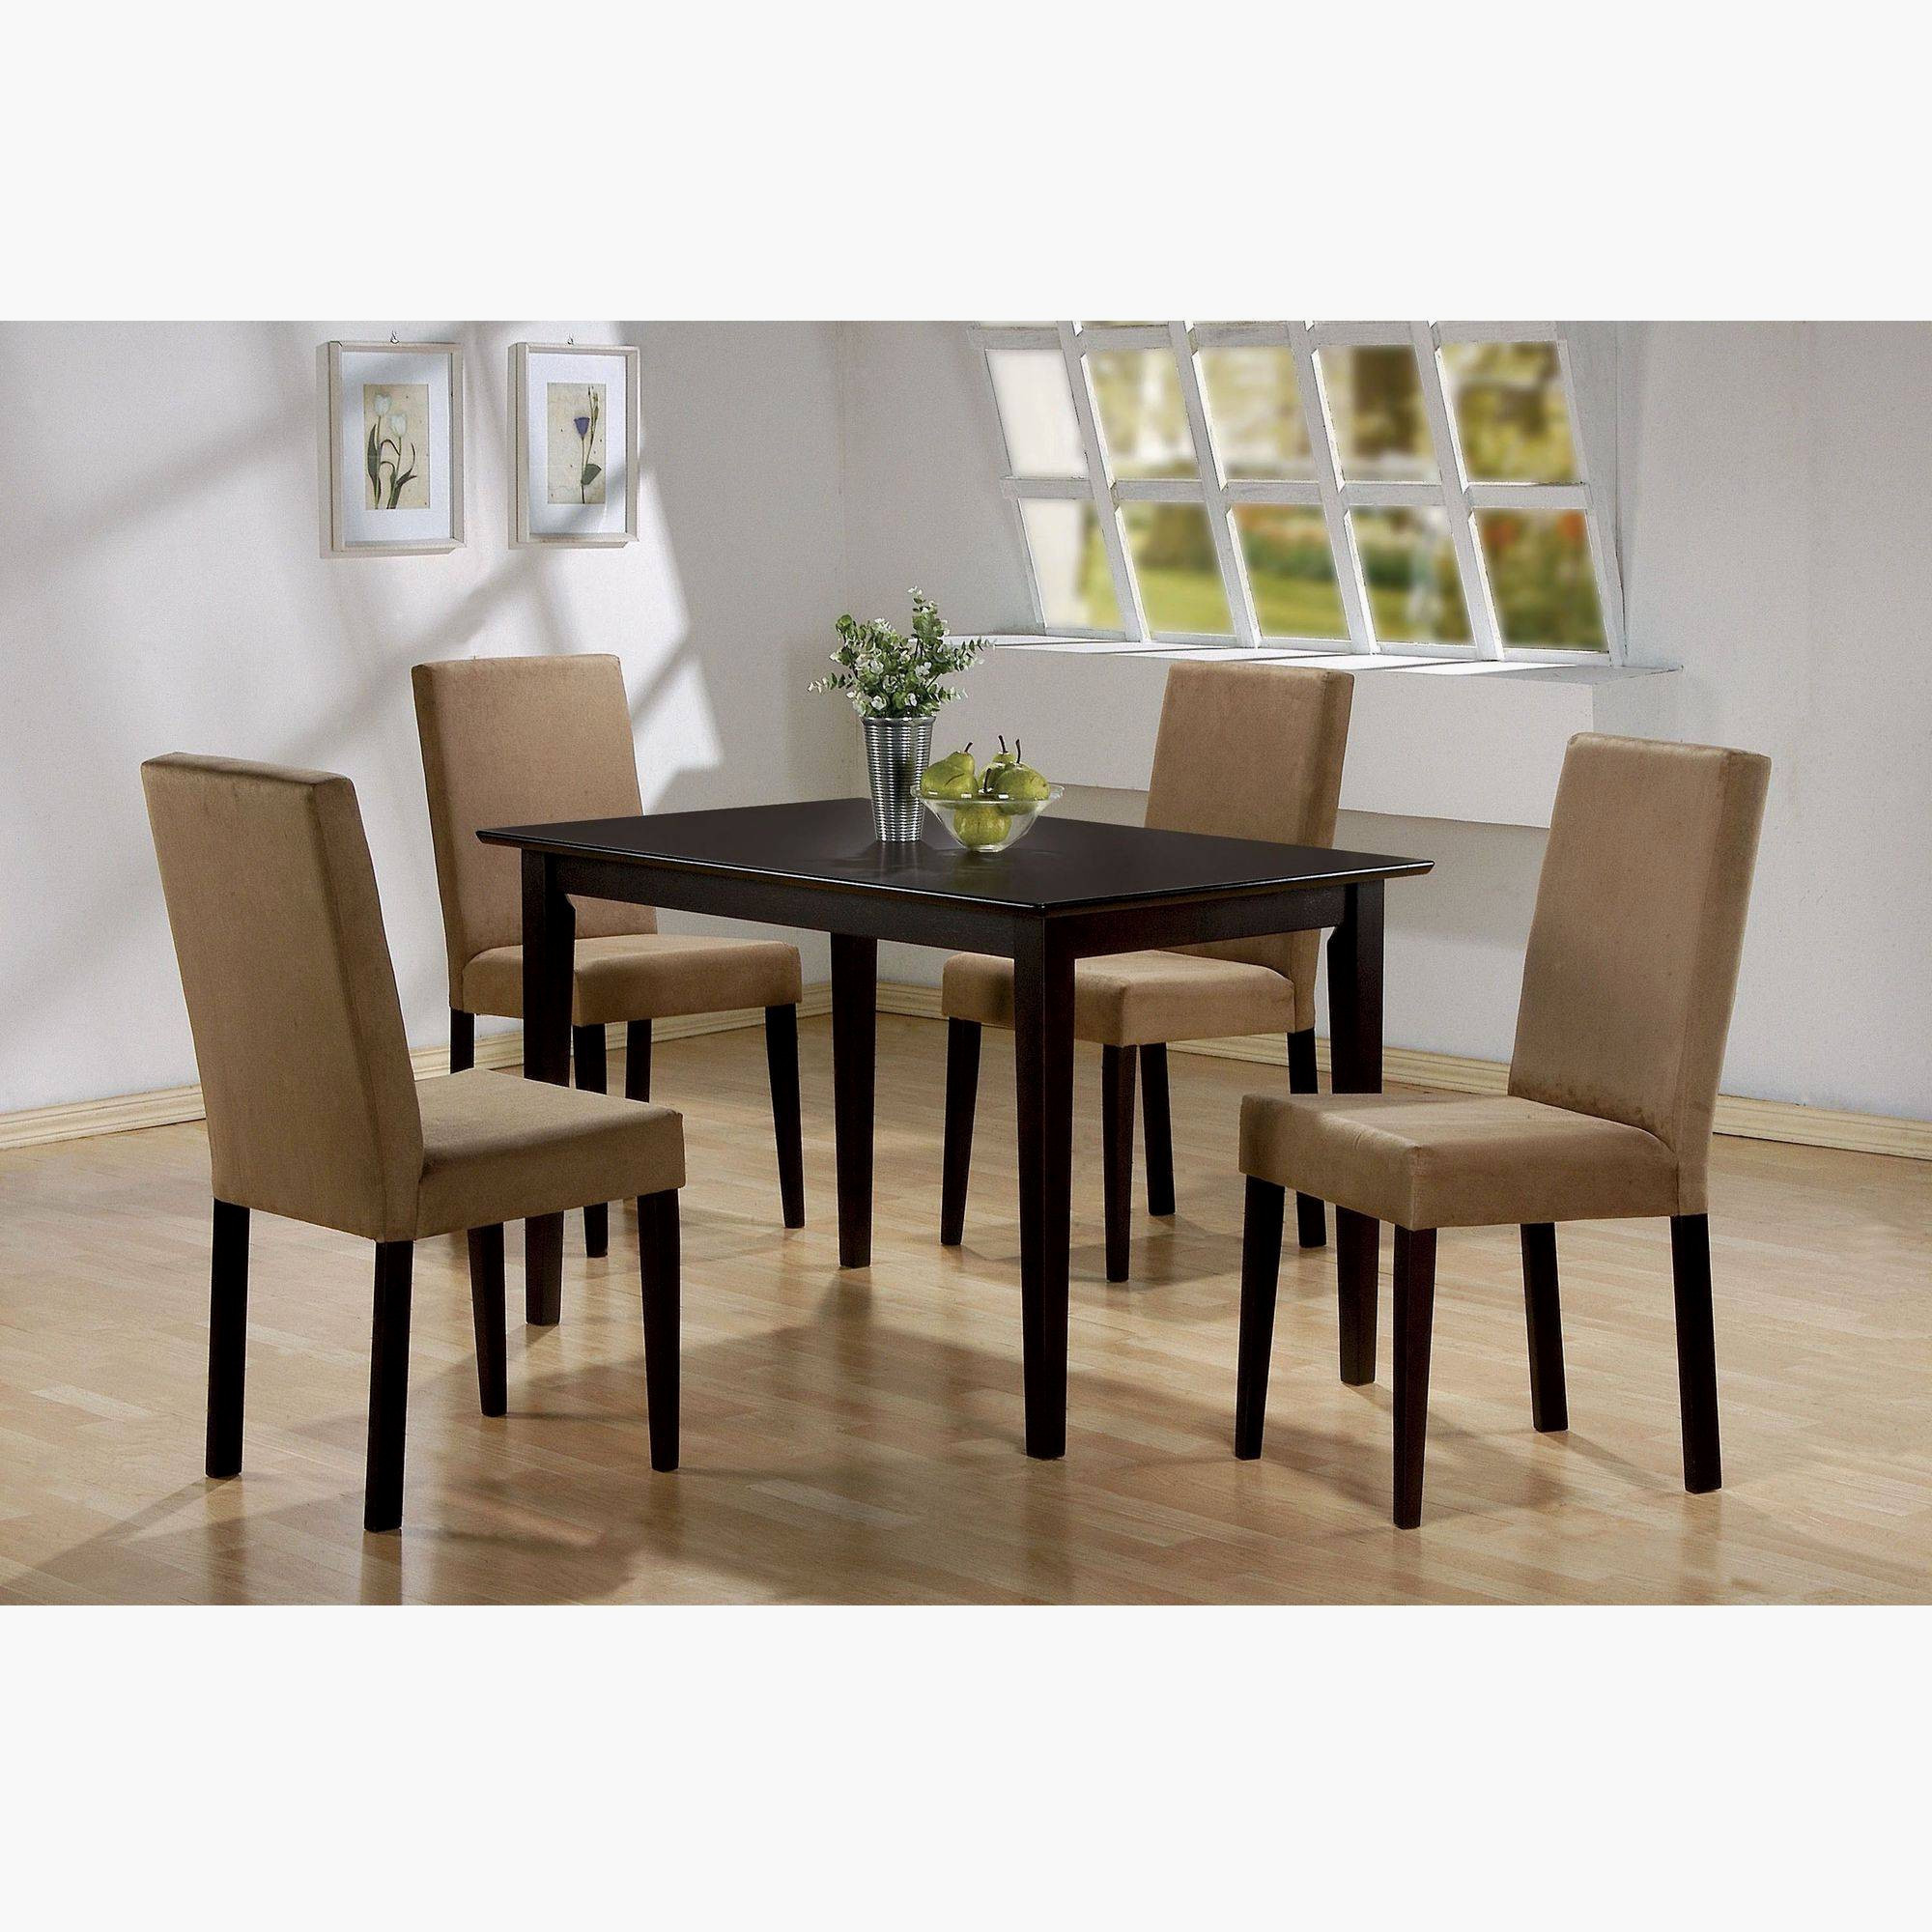 Best ideas about Overstock Dining Table . Save or Pin Beautiful Overstock Kitchen Table GL Kitchen Design Now.